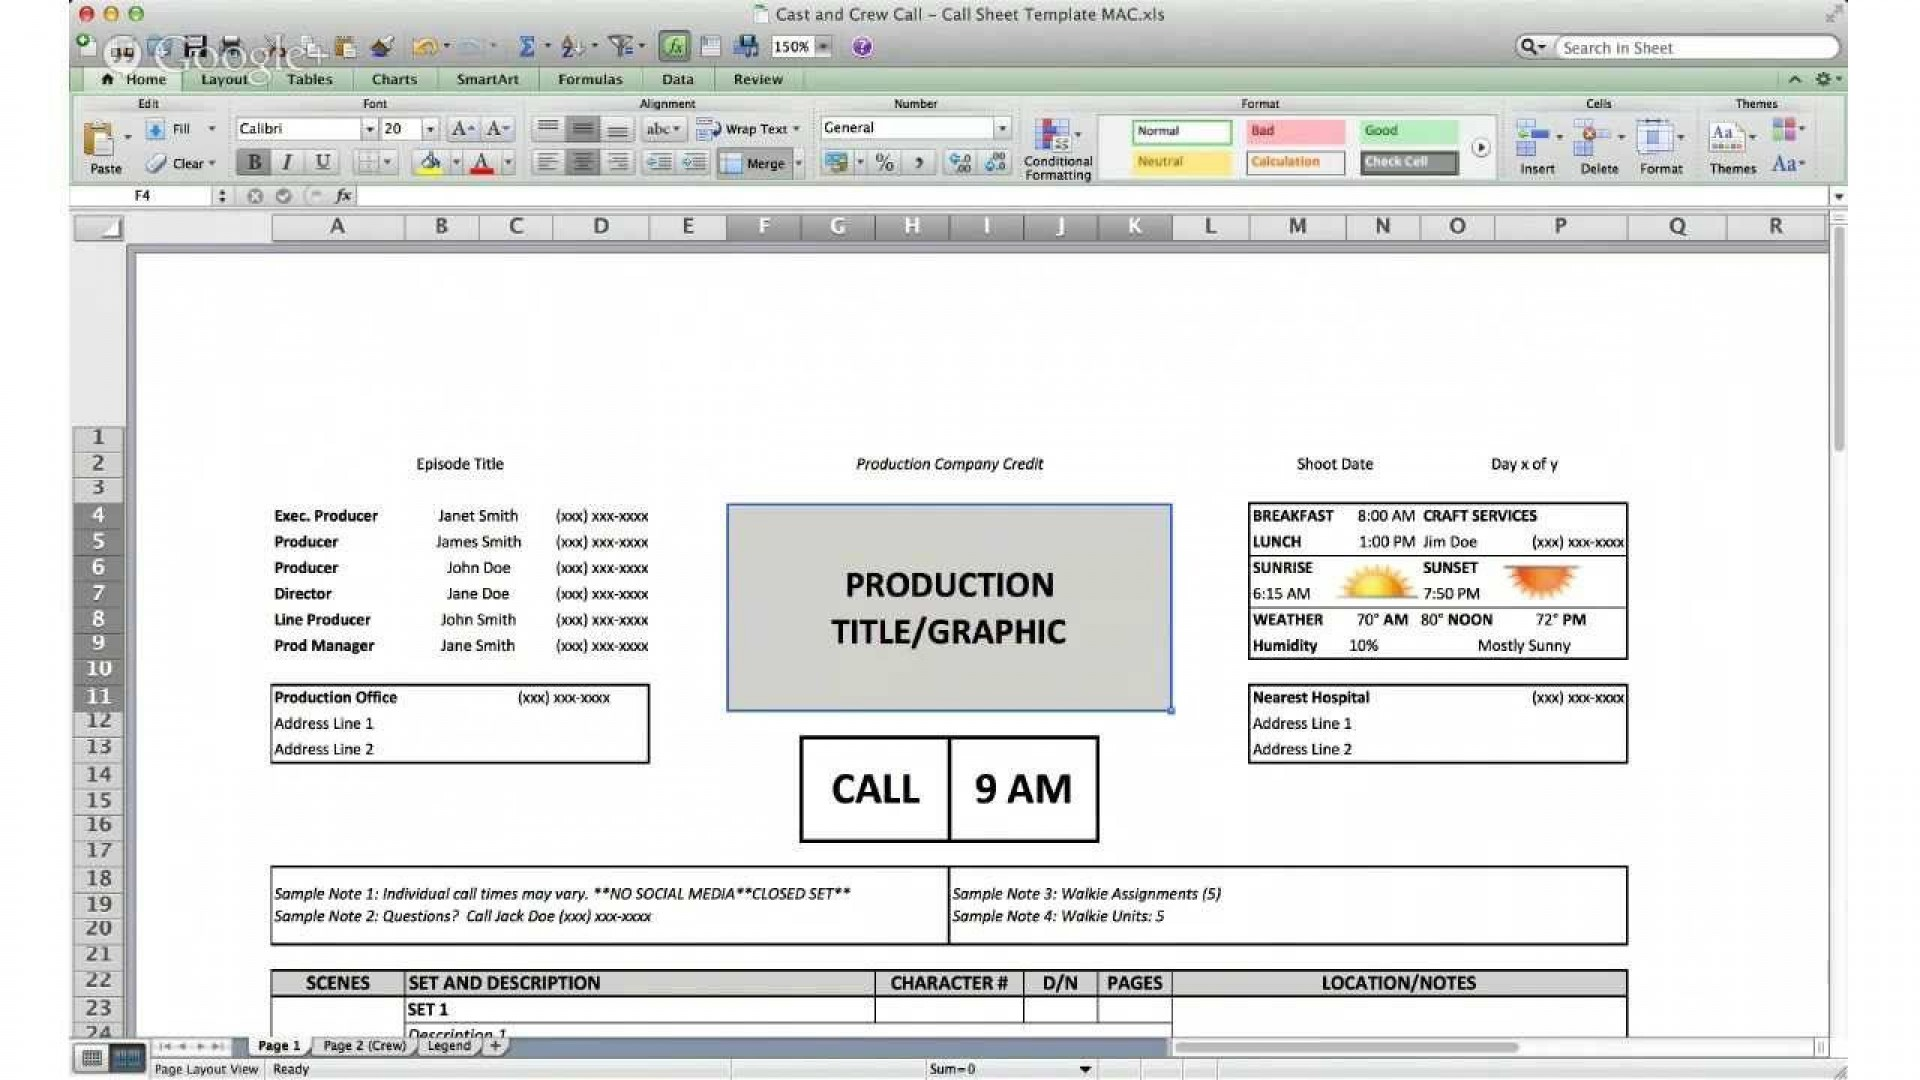 002 Formidable Film Call Sheet Sample  Template Download Excel Google Doc1920